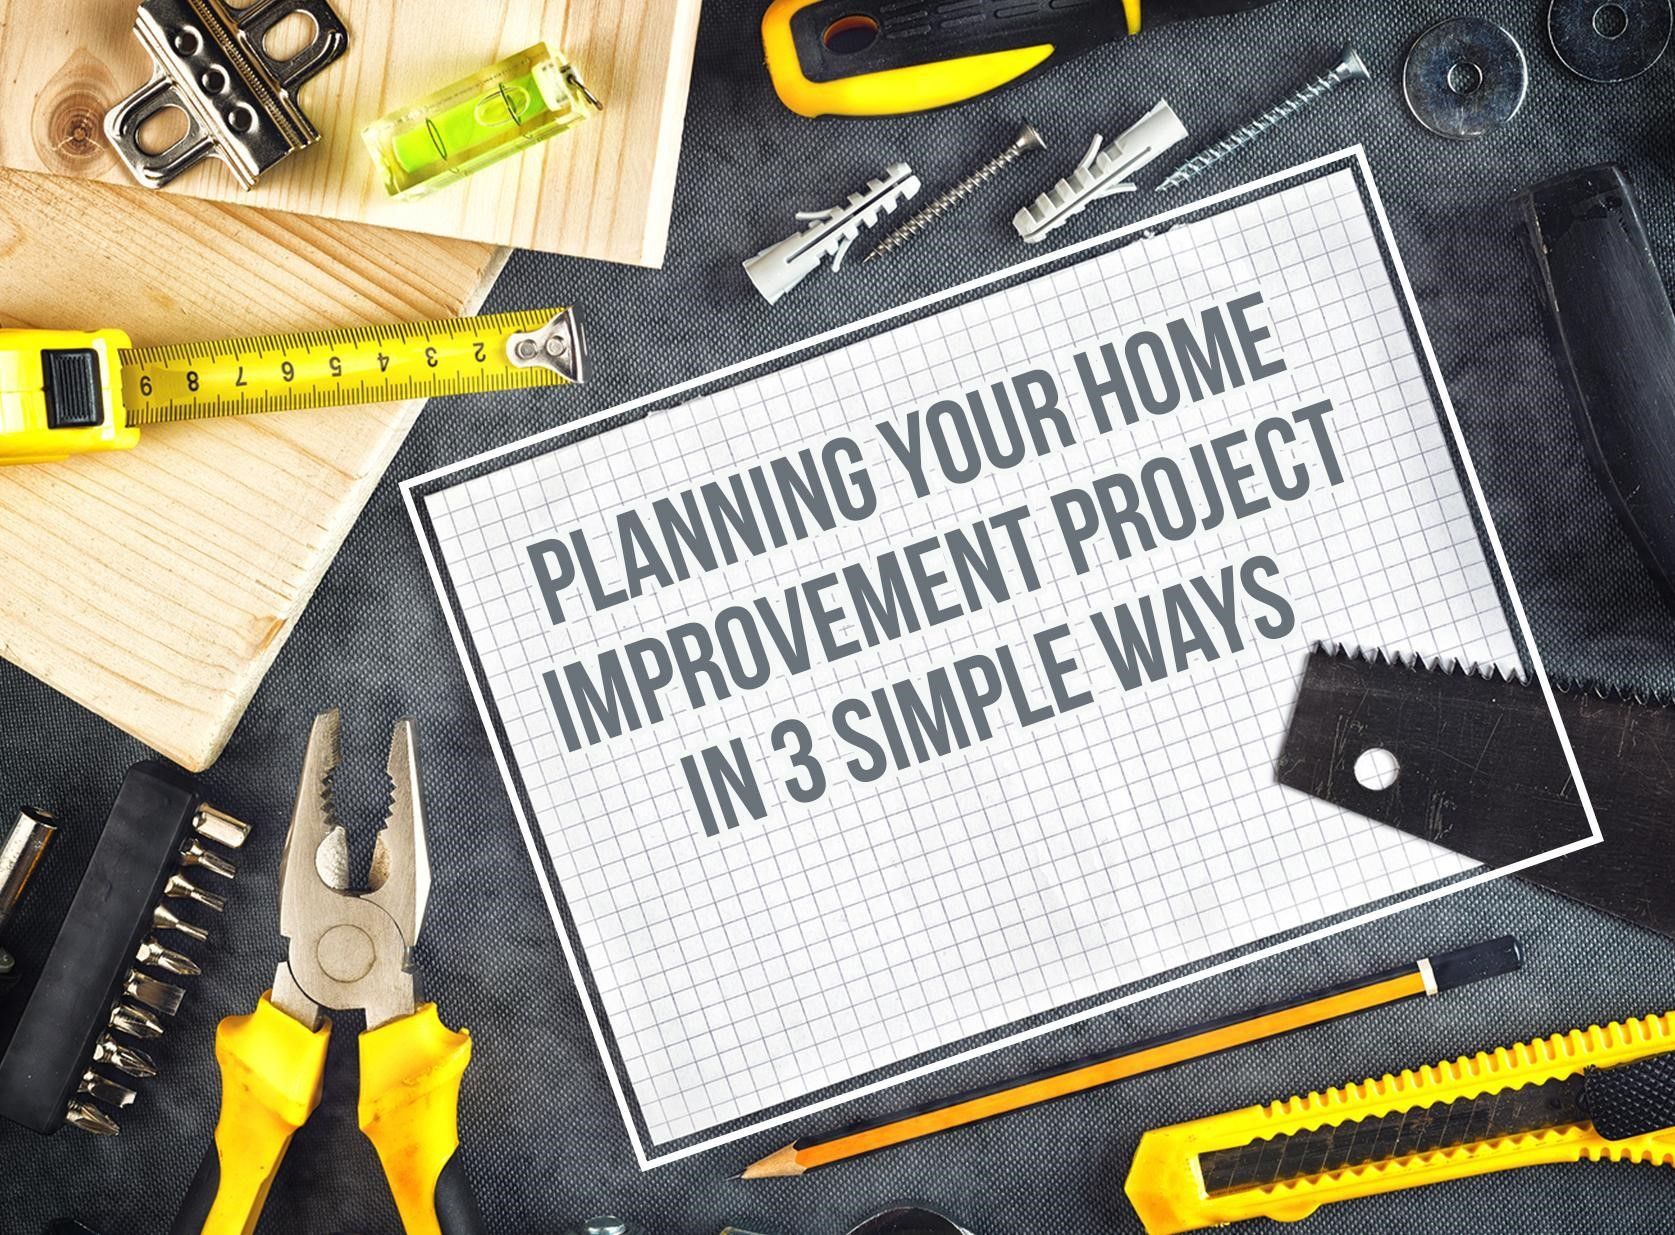 Planning your home improvement project in 3 simple ways for Easy home improvement projects